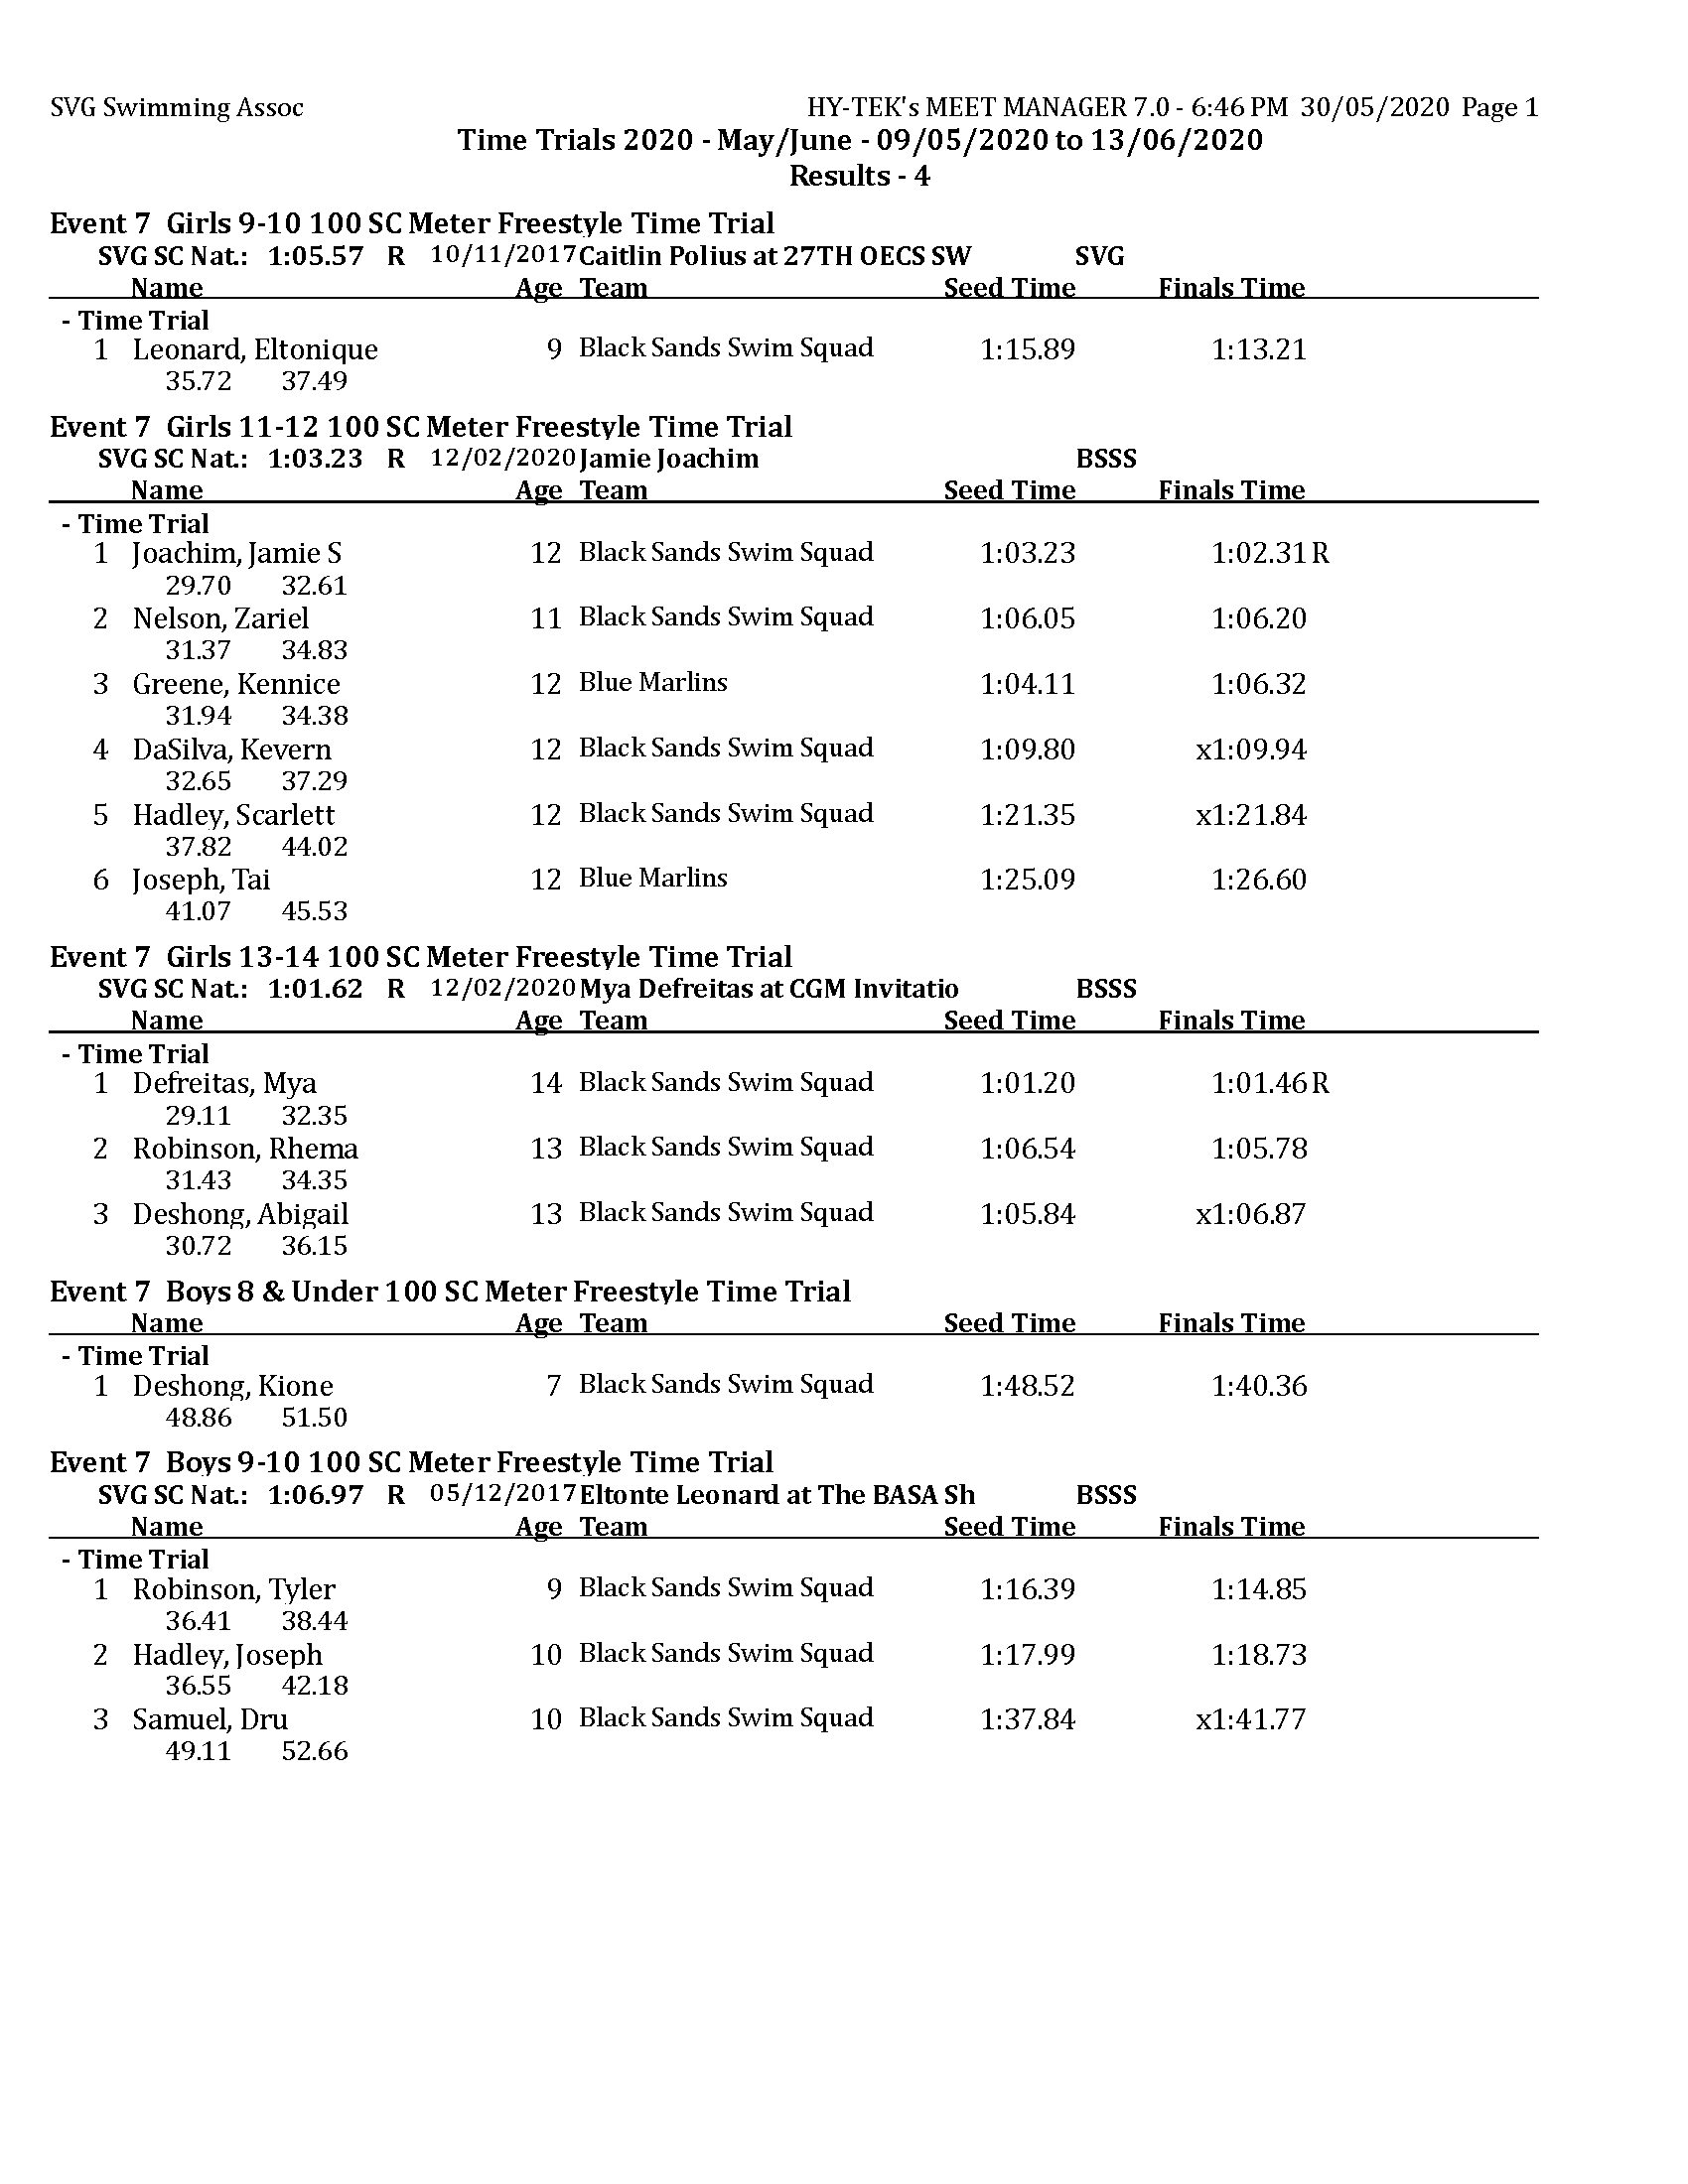 TT 2020 - May - Results day 4 MM_Page_1